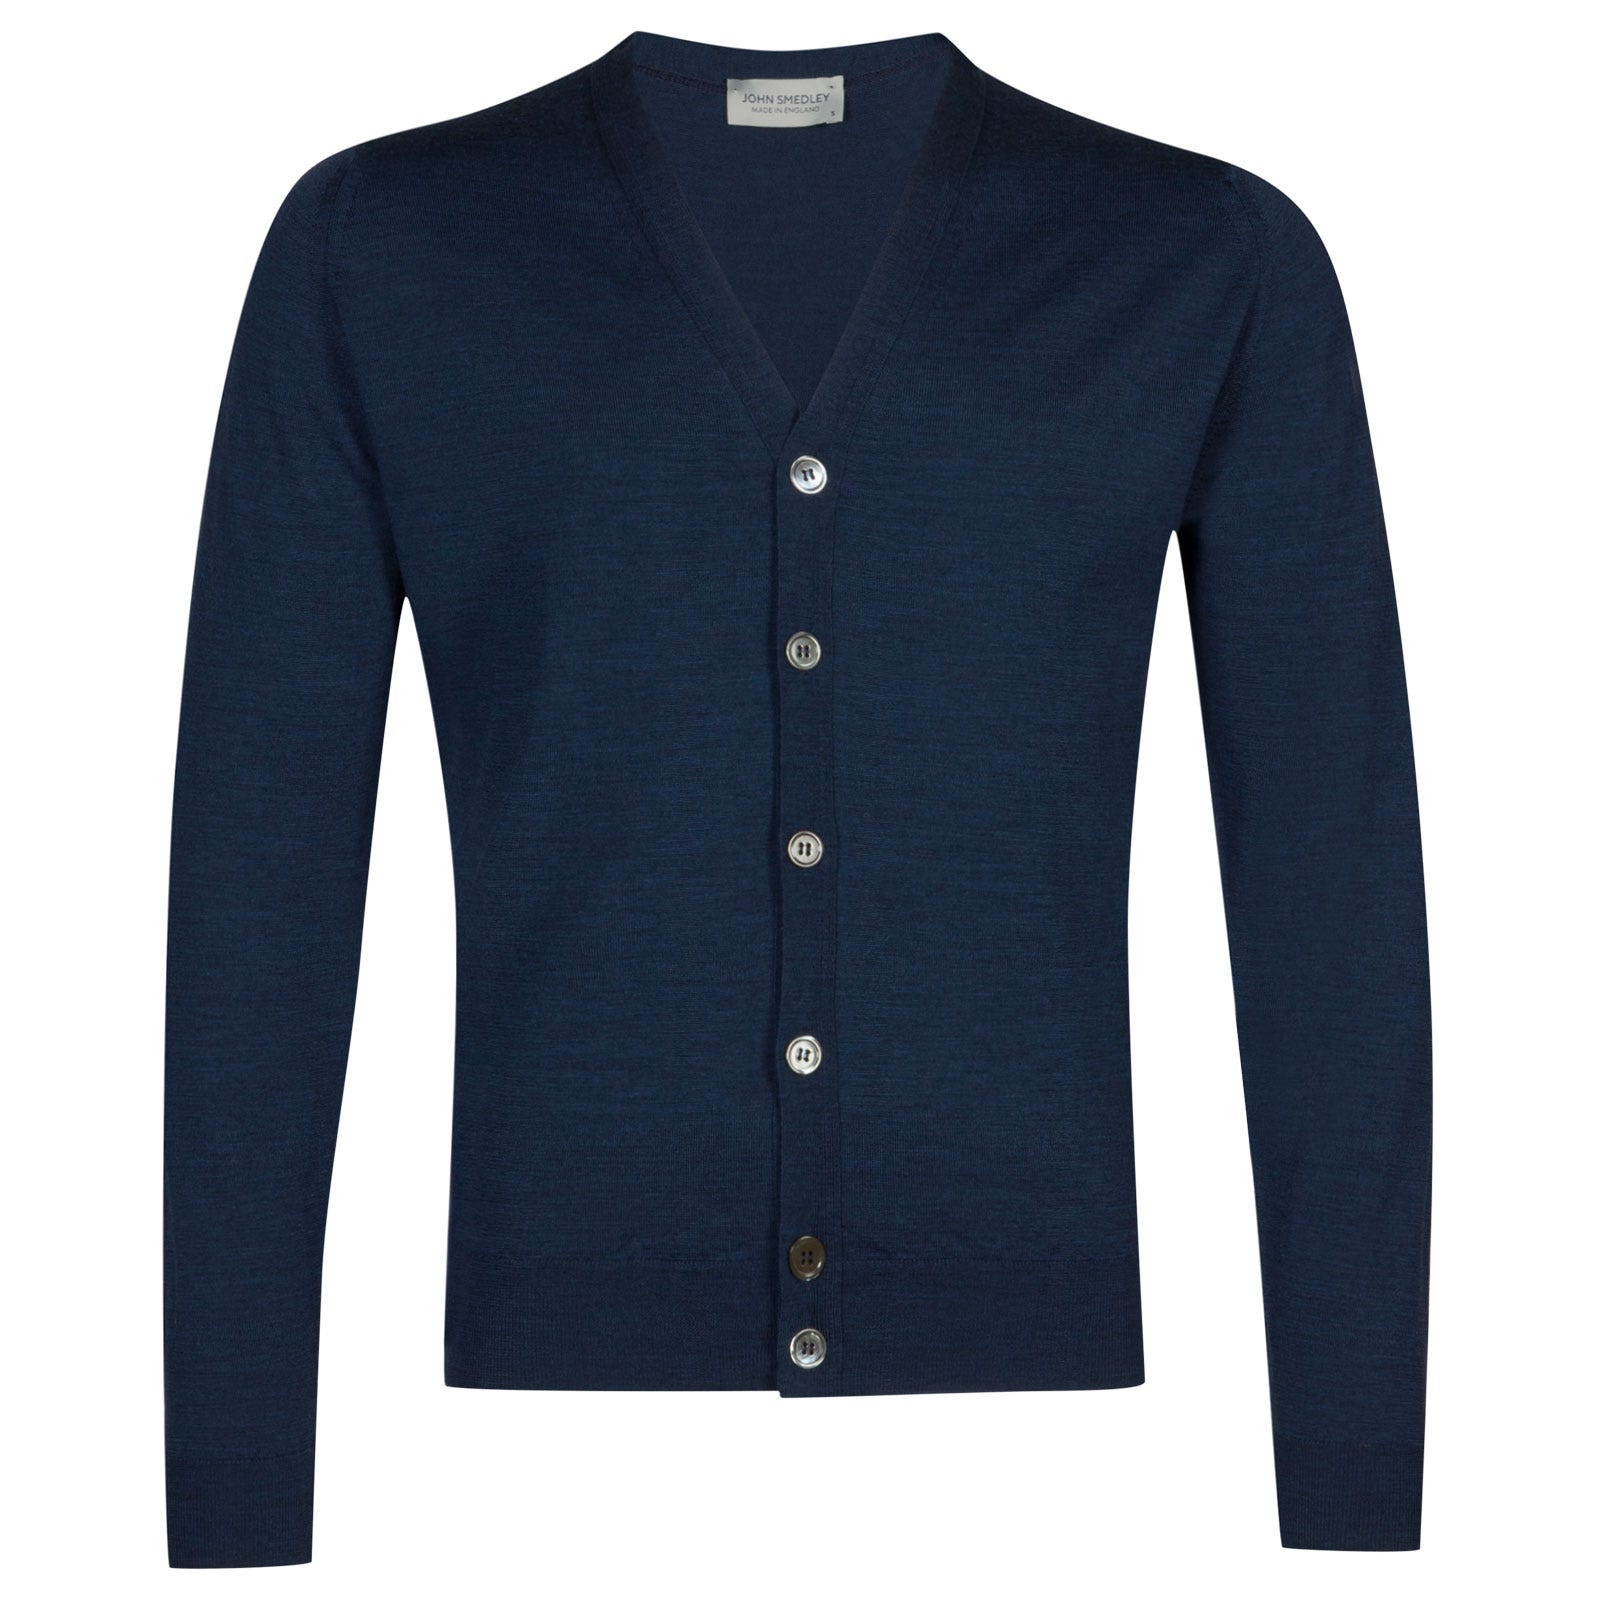 John Smedley naples Merino Wool Cardigan in Indigo-XL